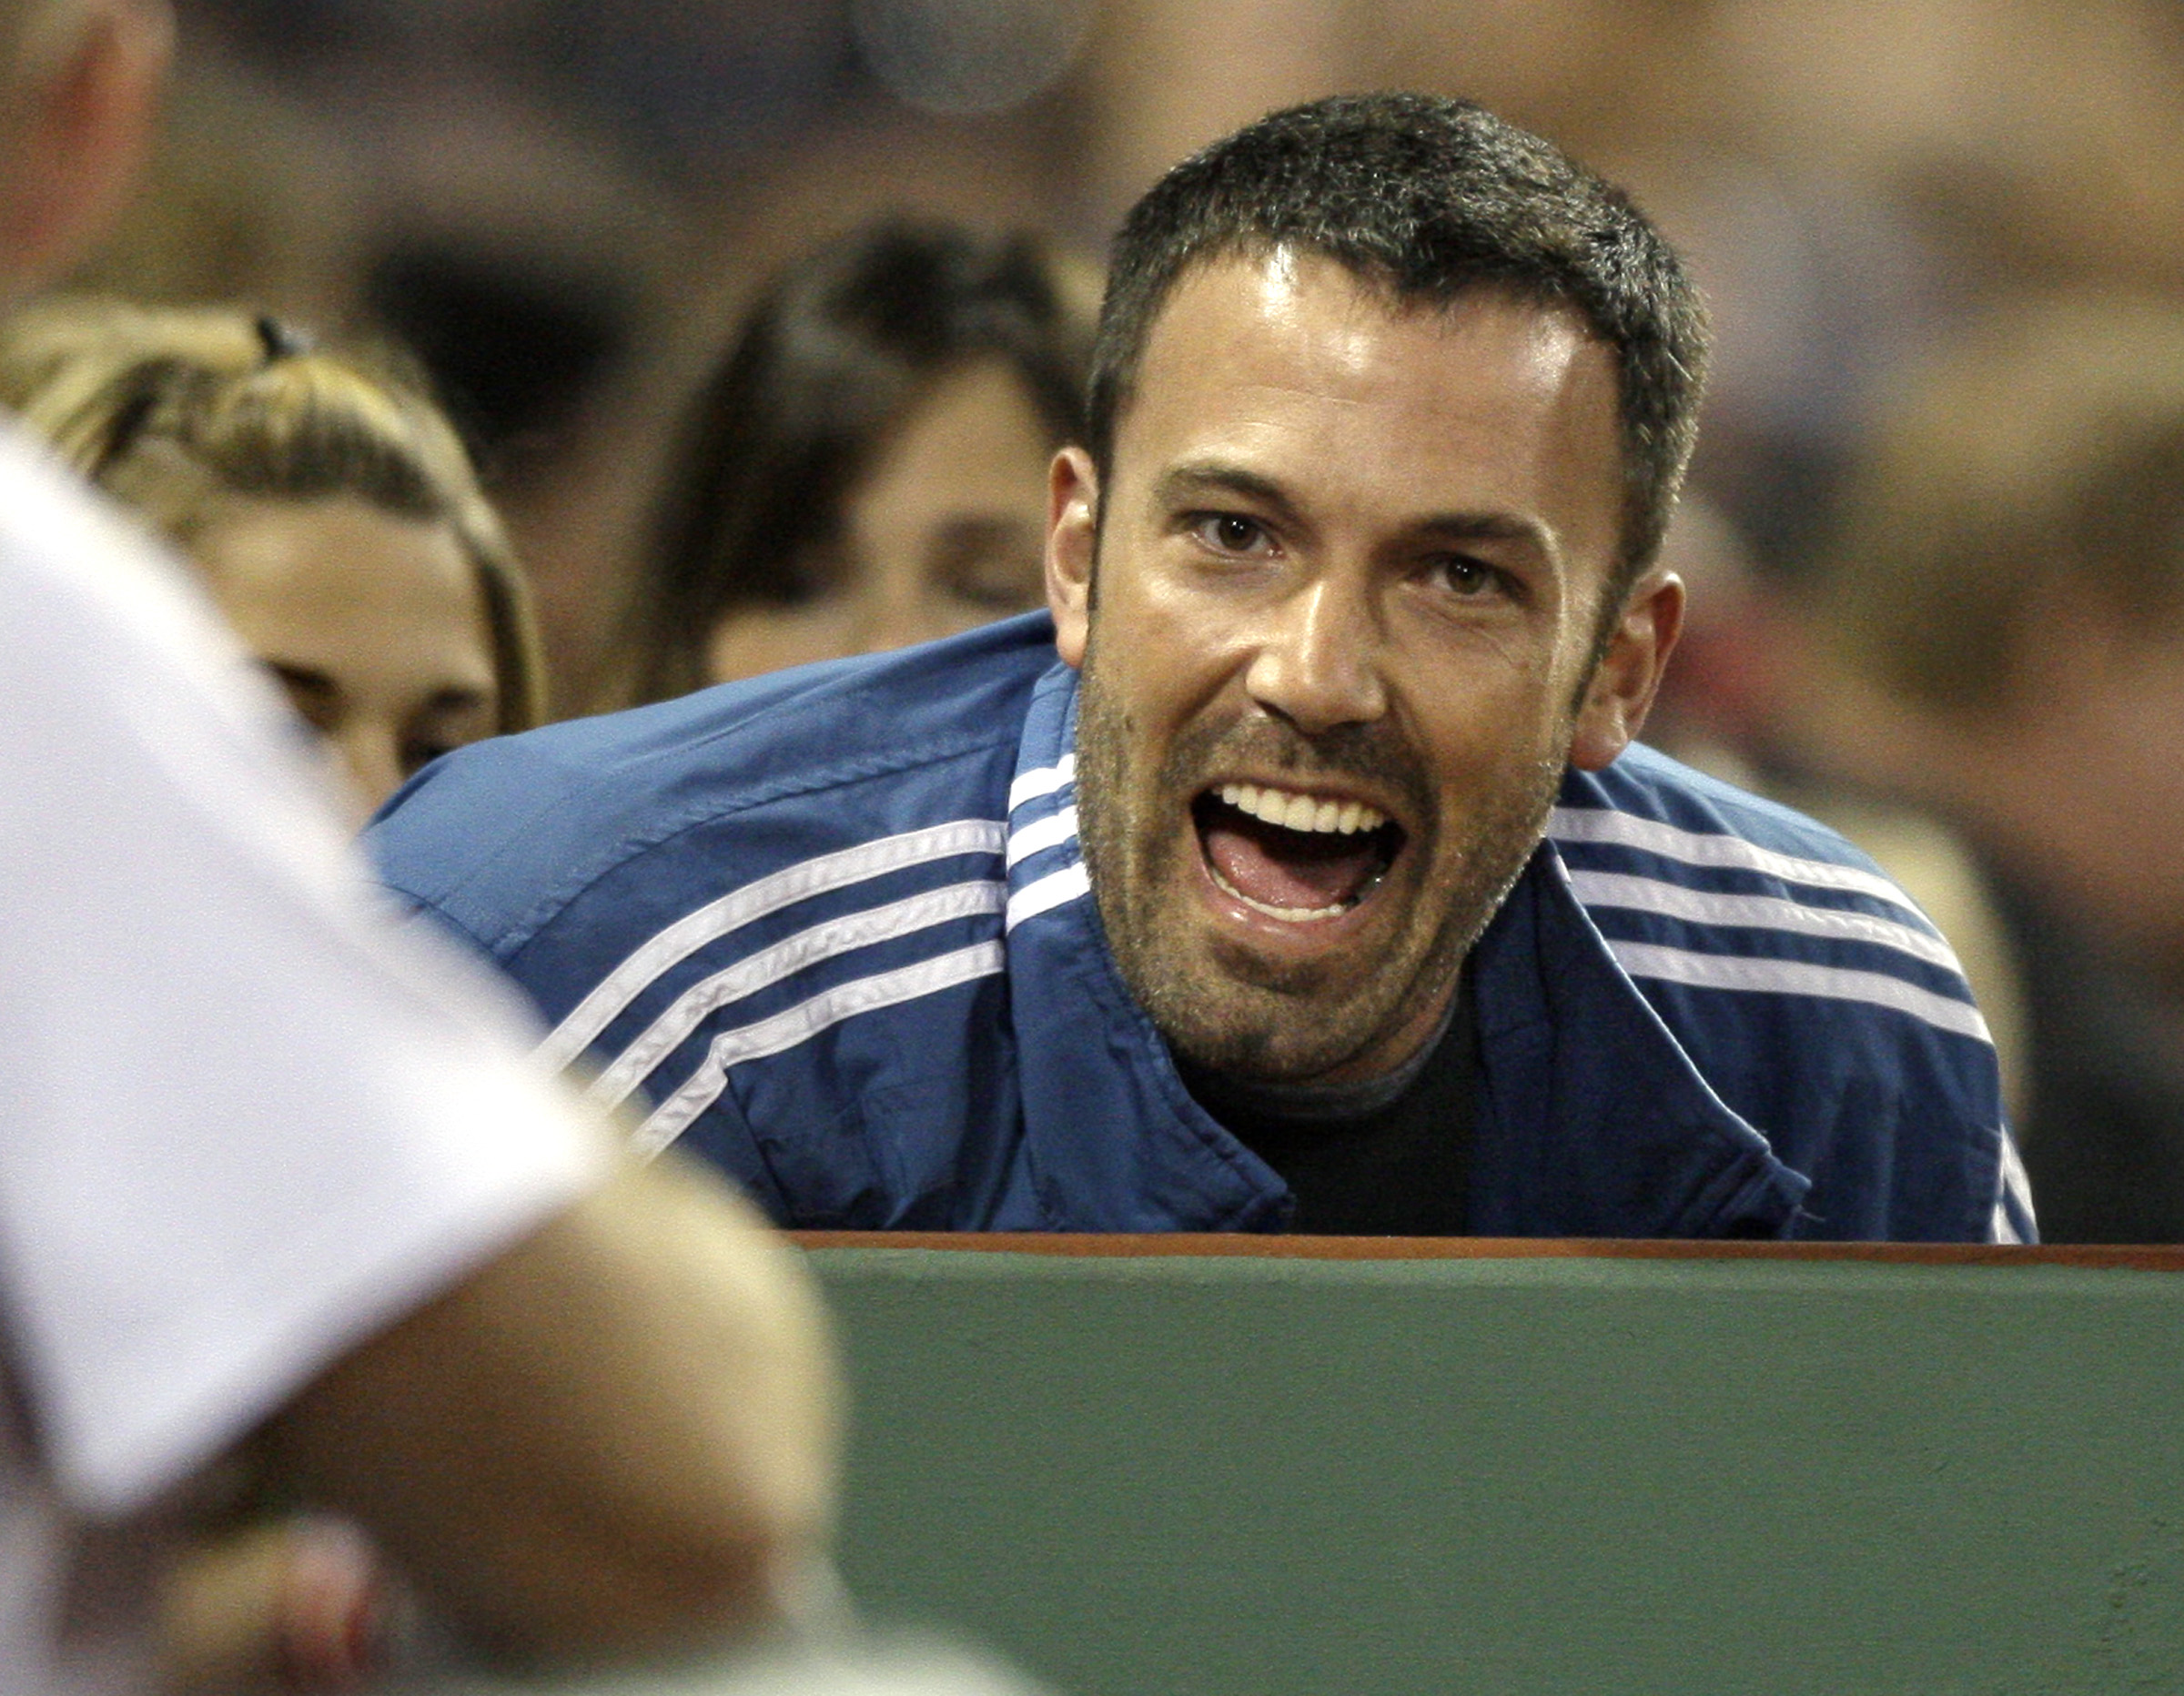 Actor Ben Affleck leans in to speak to players and coaches in the Boston Red Sox dugout during their baseball game against the Florida Marlins at Fenway Park in Boston Tuesday, June 16, 2009. (AP Photo/Elise Amendola)